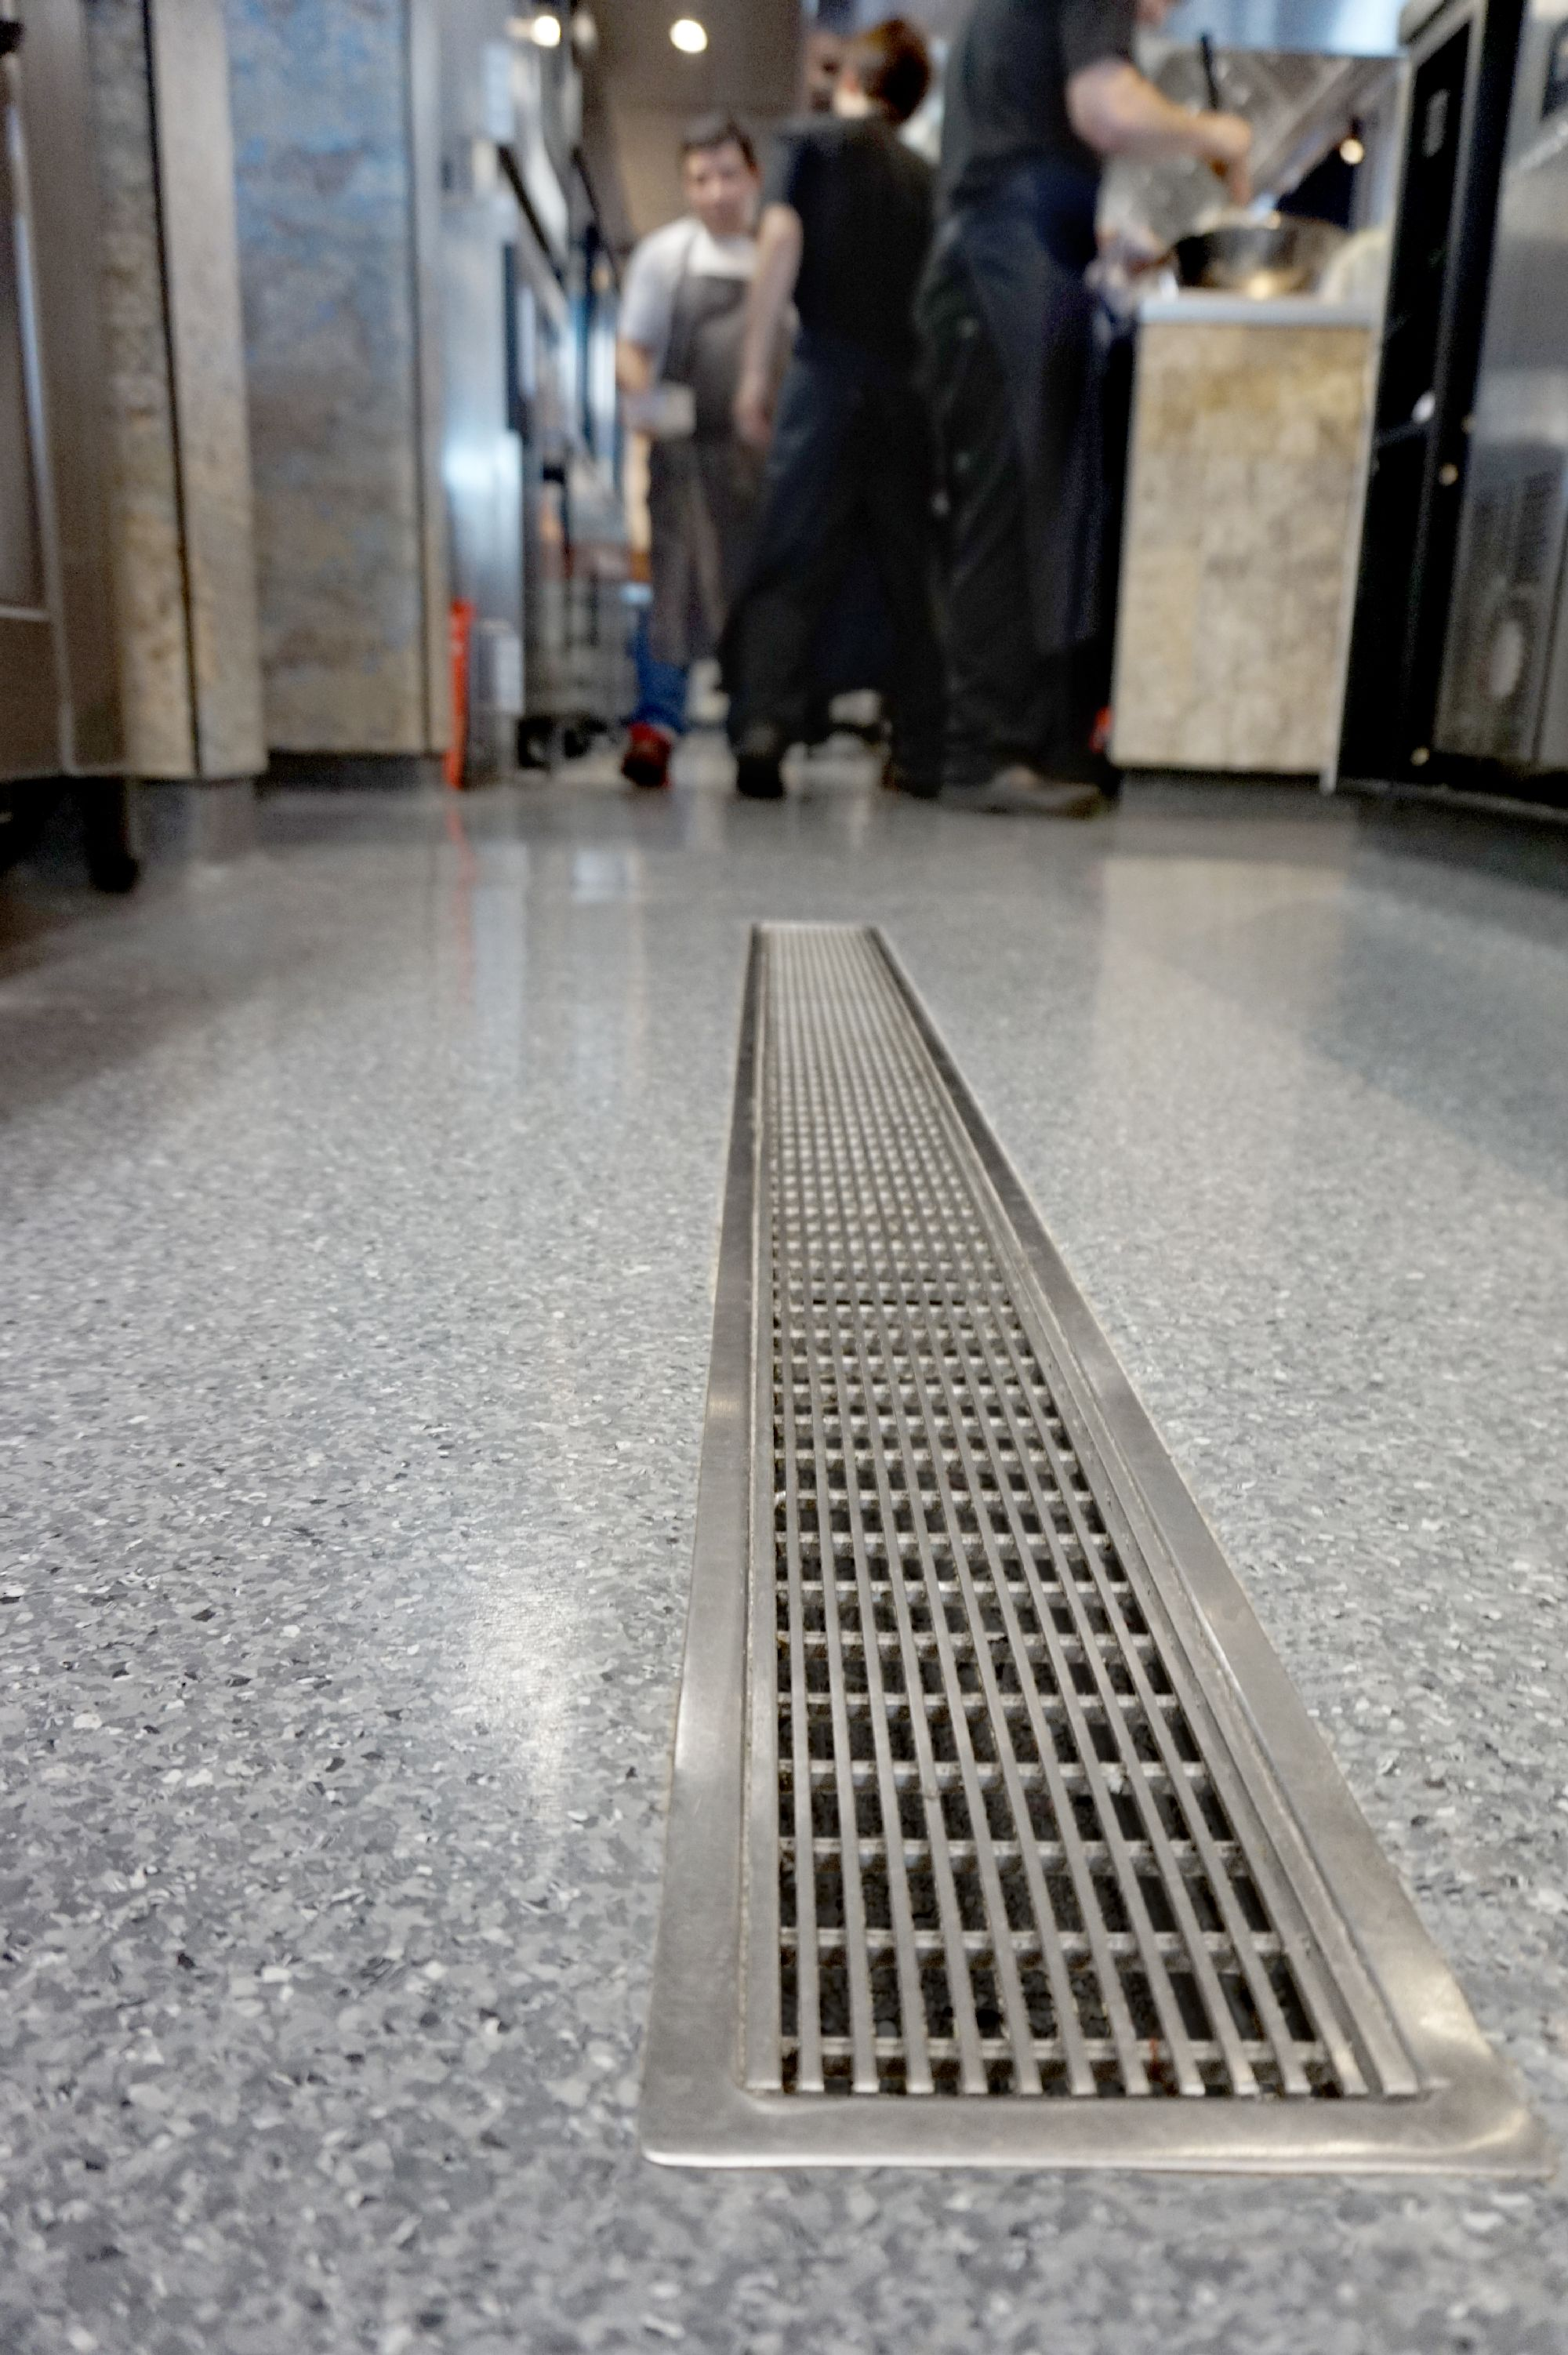 Allproof Vcc Channel For Commercial Kitchen Drainage Solutions